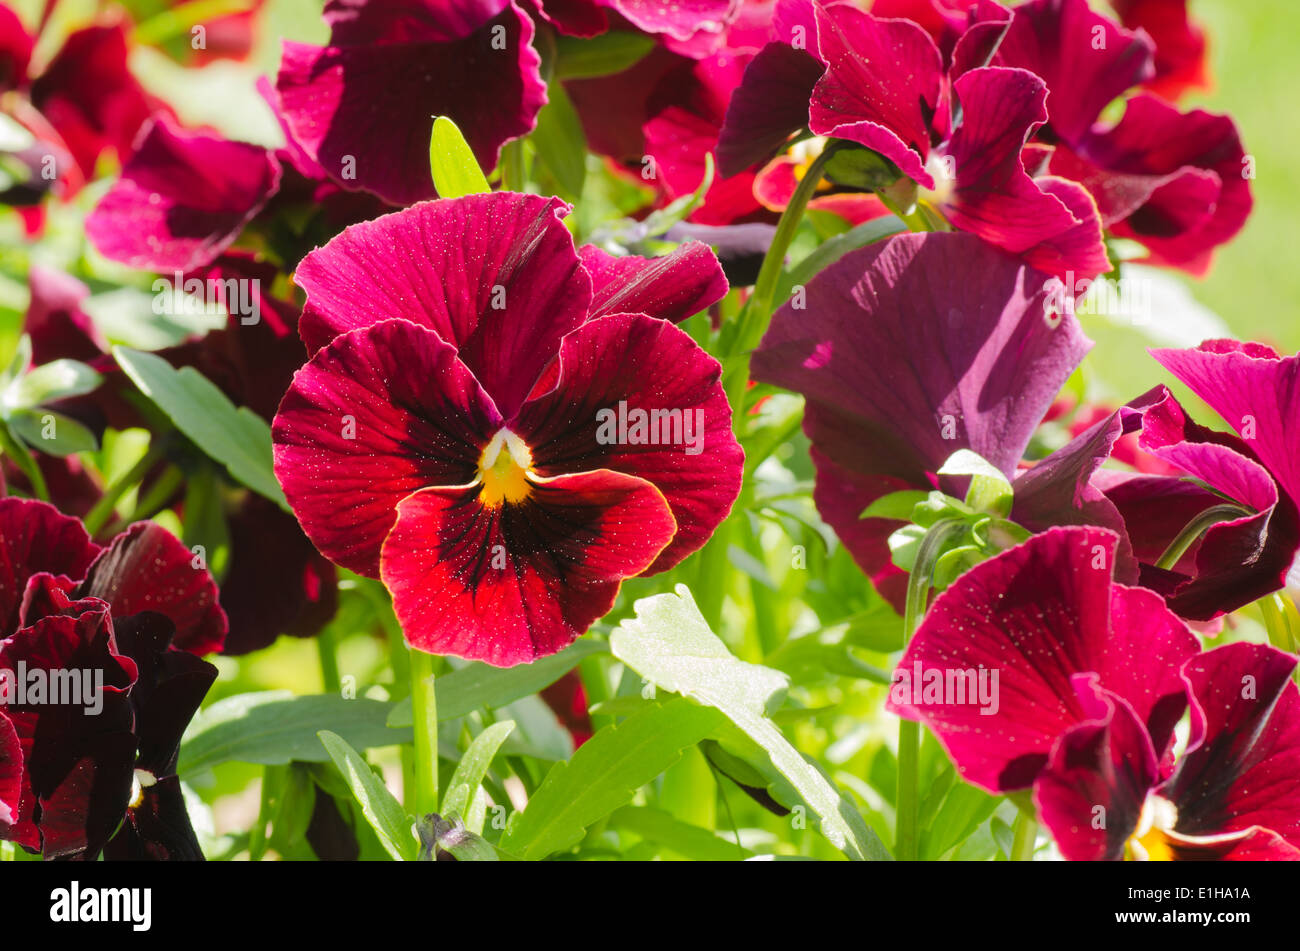 Group of sunlit red pansies Stock Photo